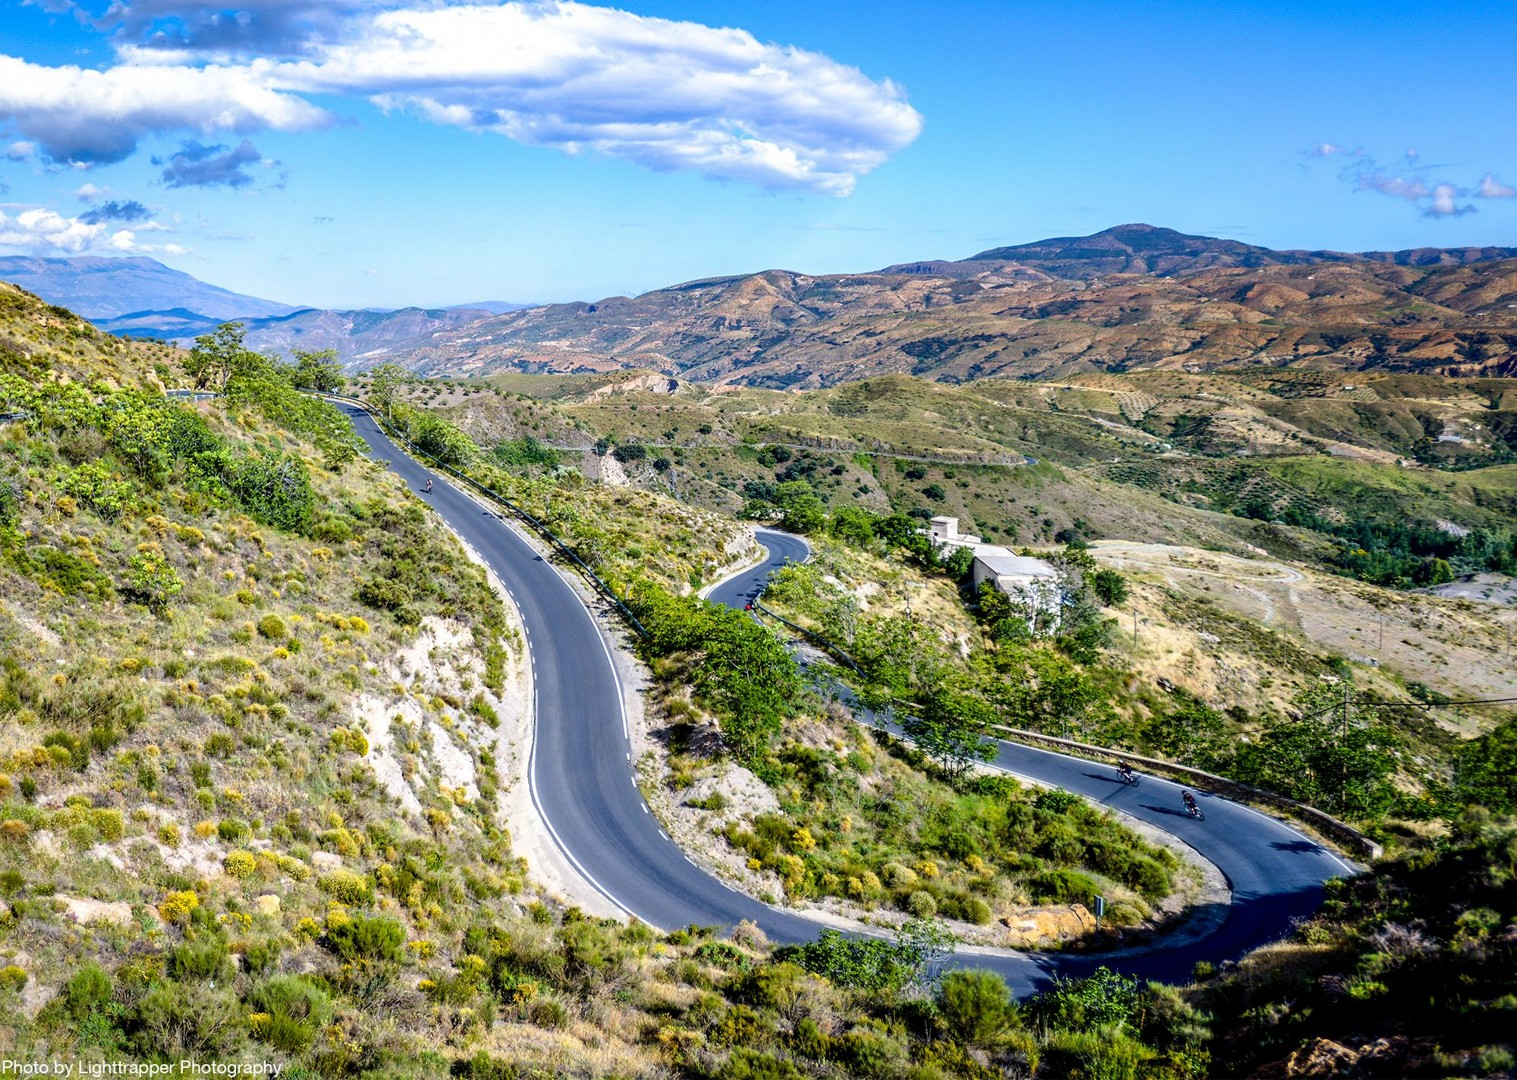 spanish-cycling-holidays-basque-country-to-andalucia-16-days.jpg - Spain - Basque Country to Andalucia - North to South (16 Days) - Guided Road Cycling Holiday - Road Cycling